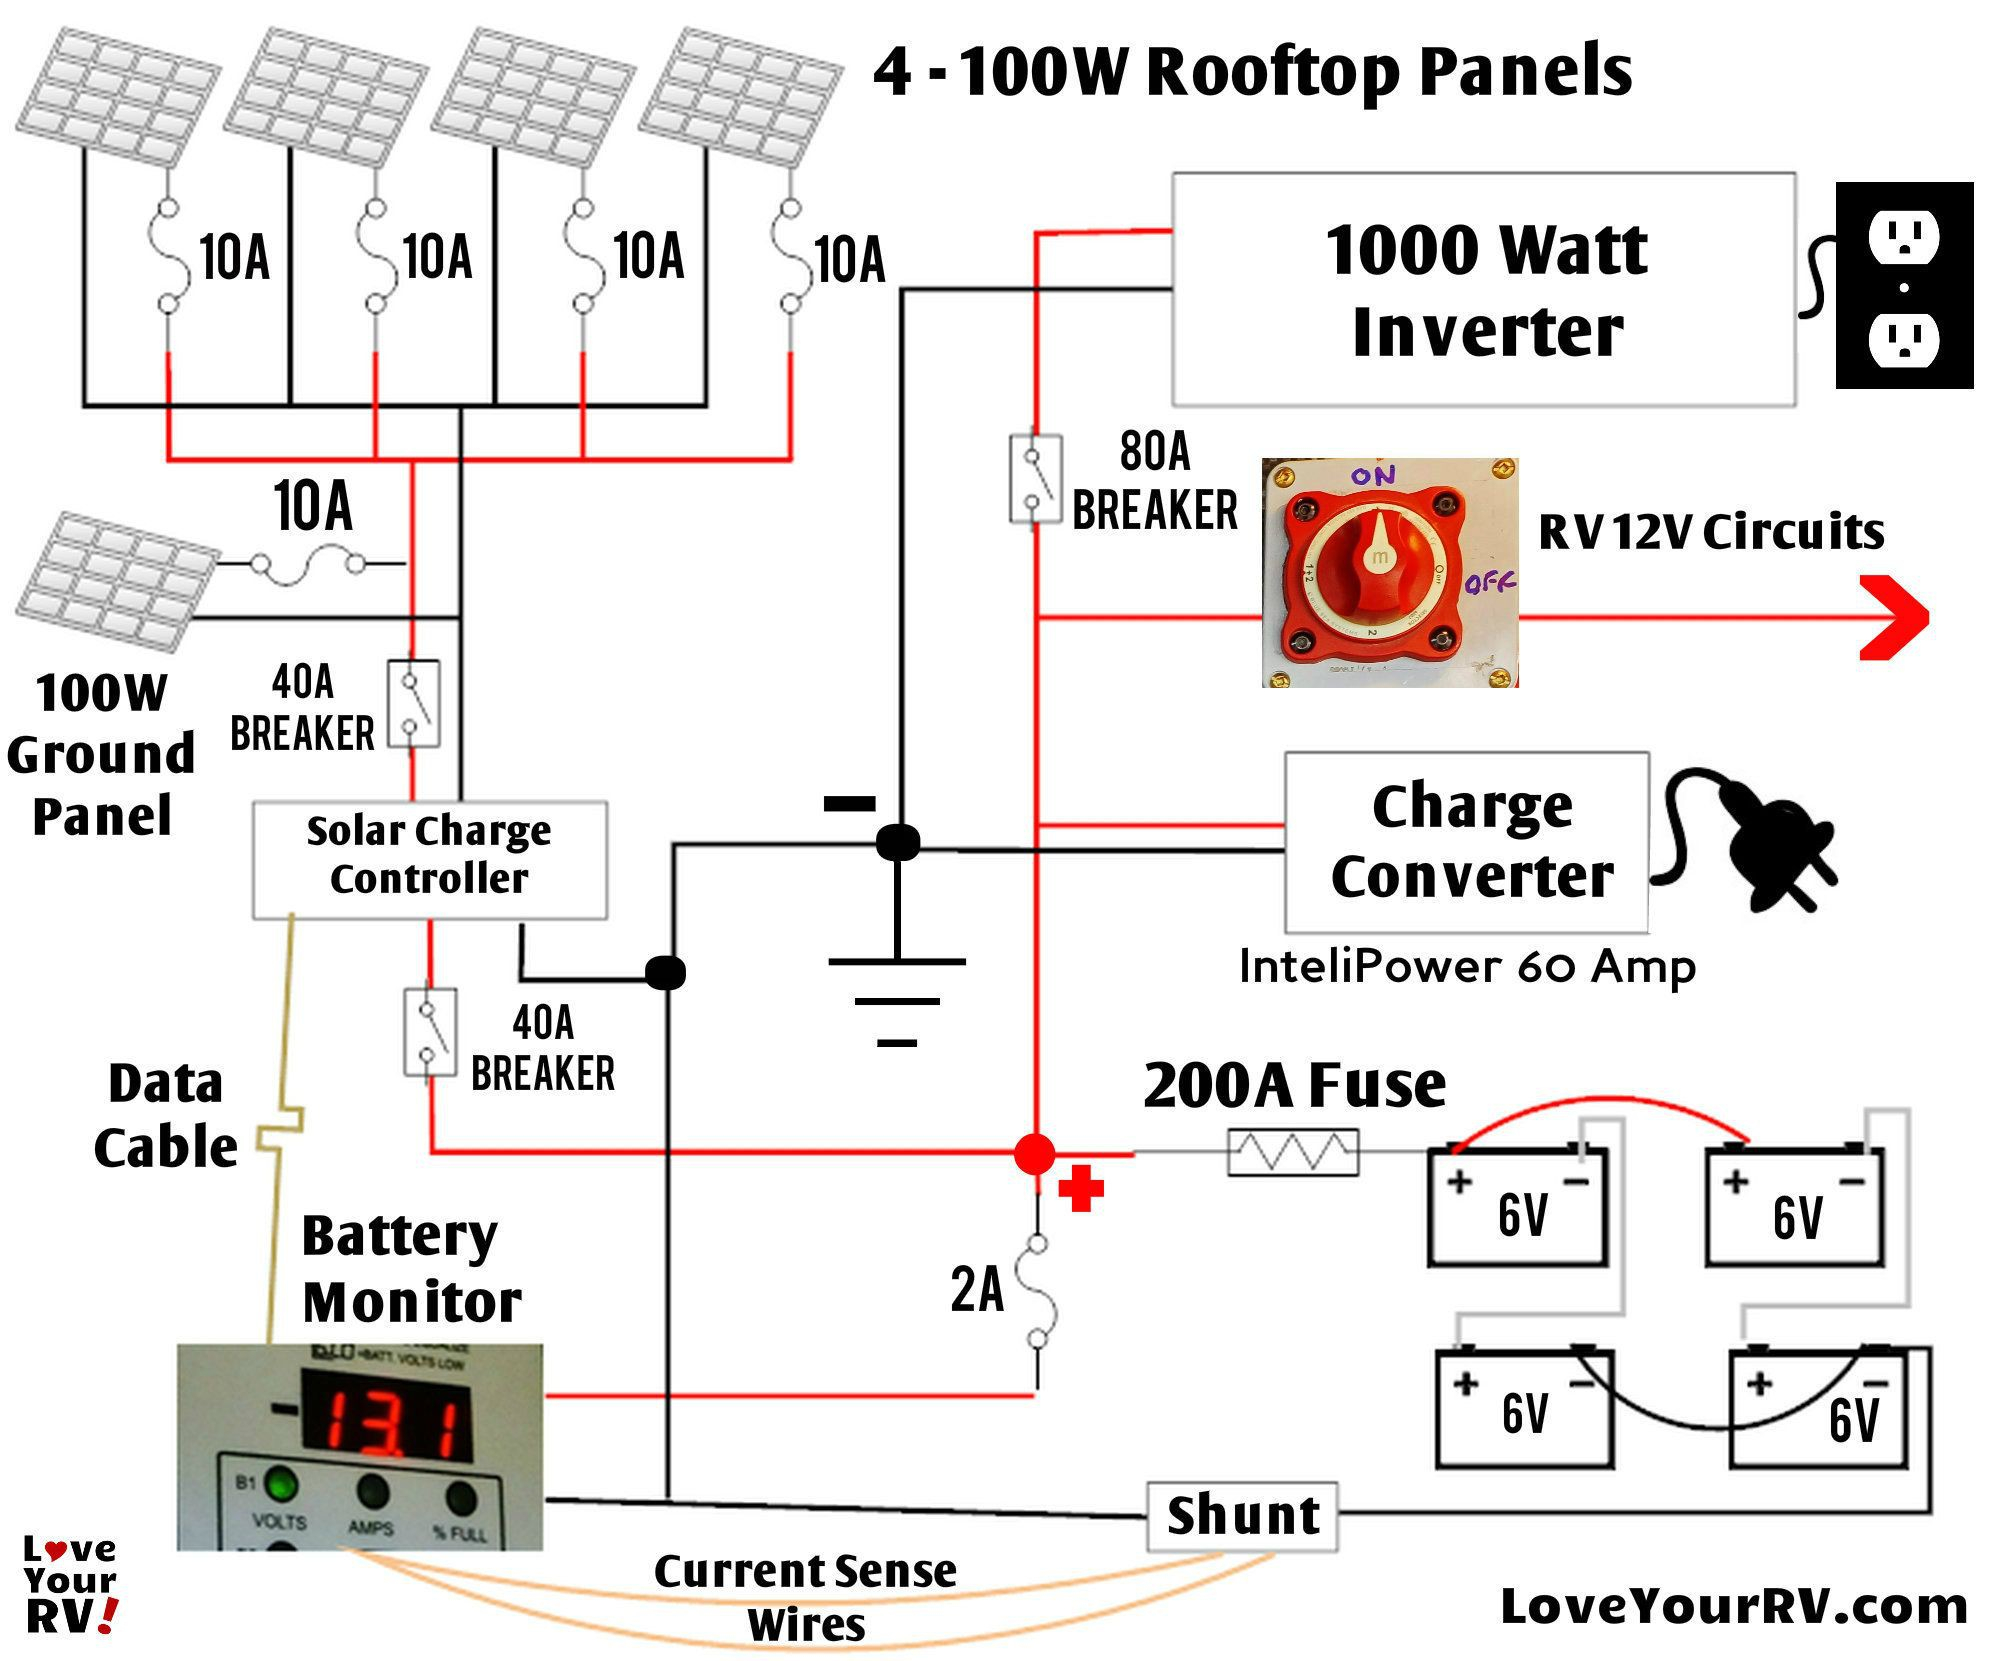 heartland rv wiring diagram Collection-Gallery of Unique Heartland Rv Wiring Diagram 5-m